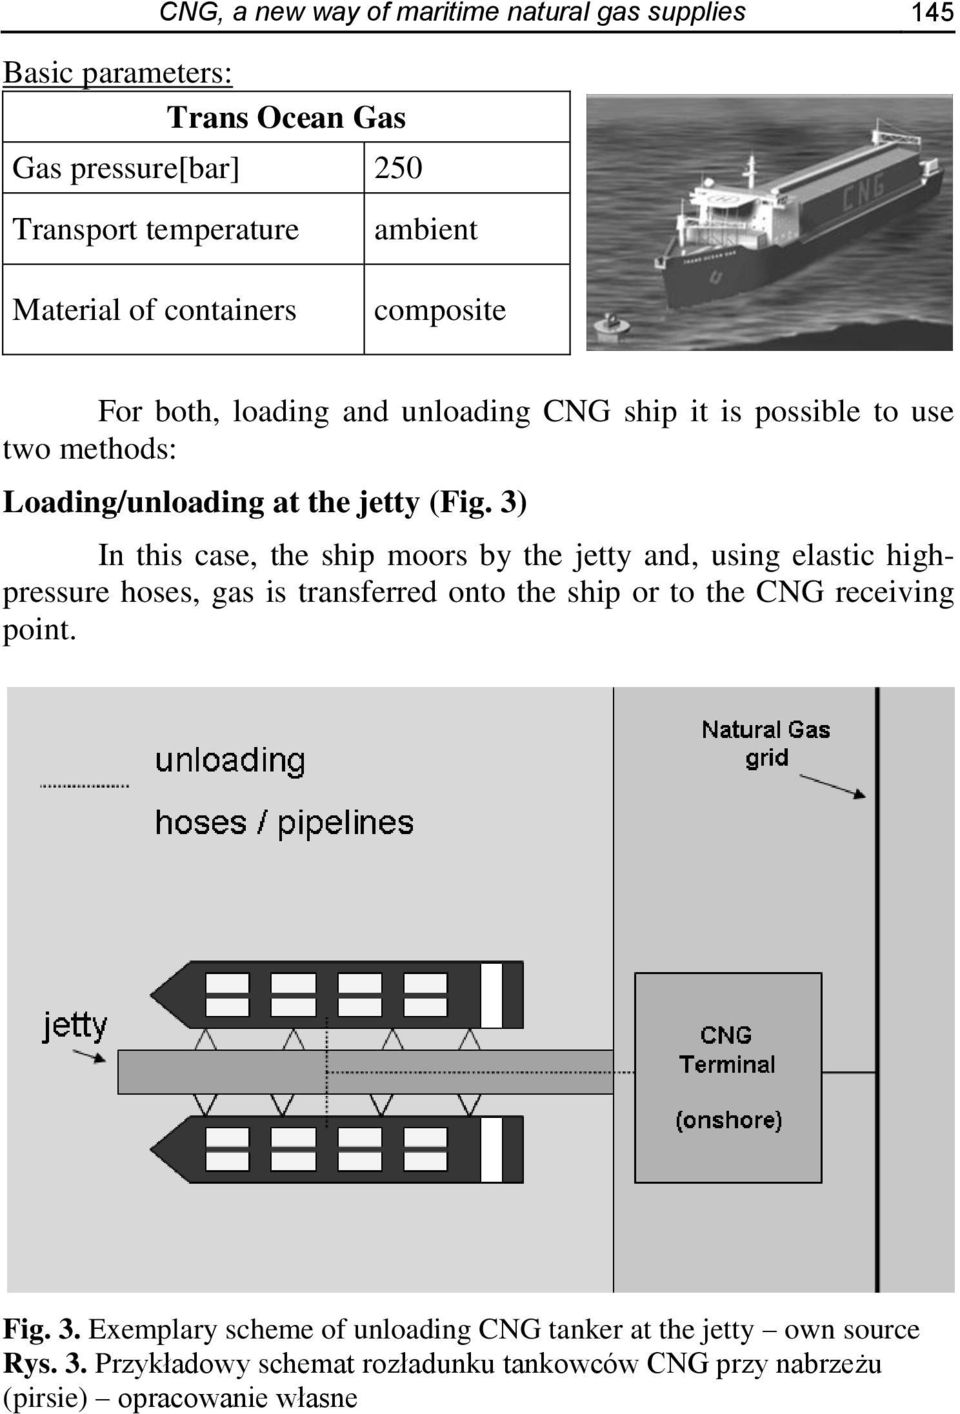 3) In this case, the ship moors by the jetty and, using elastic highpressure hoses, gas is transferred onto the ship or to the CNG receiving point.